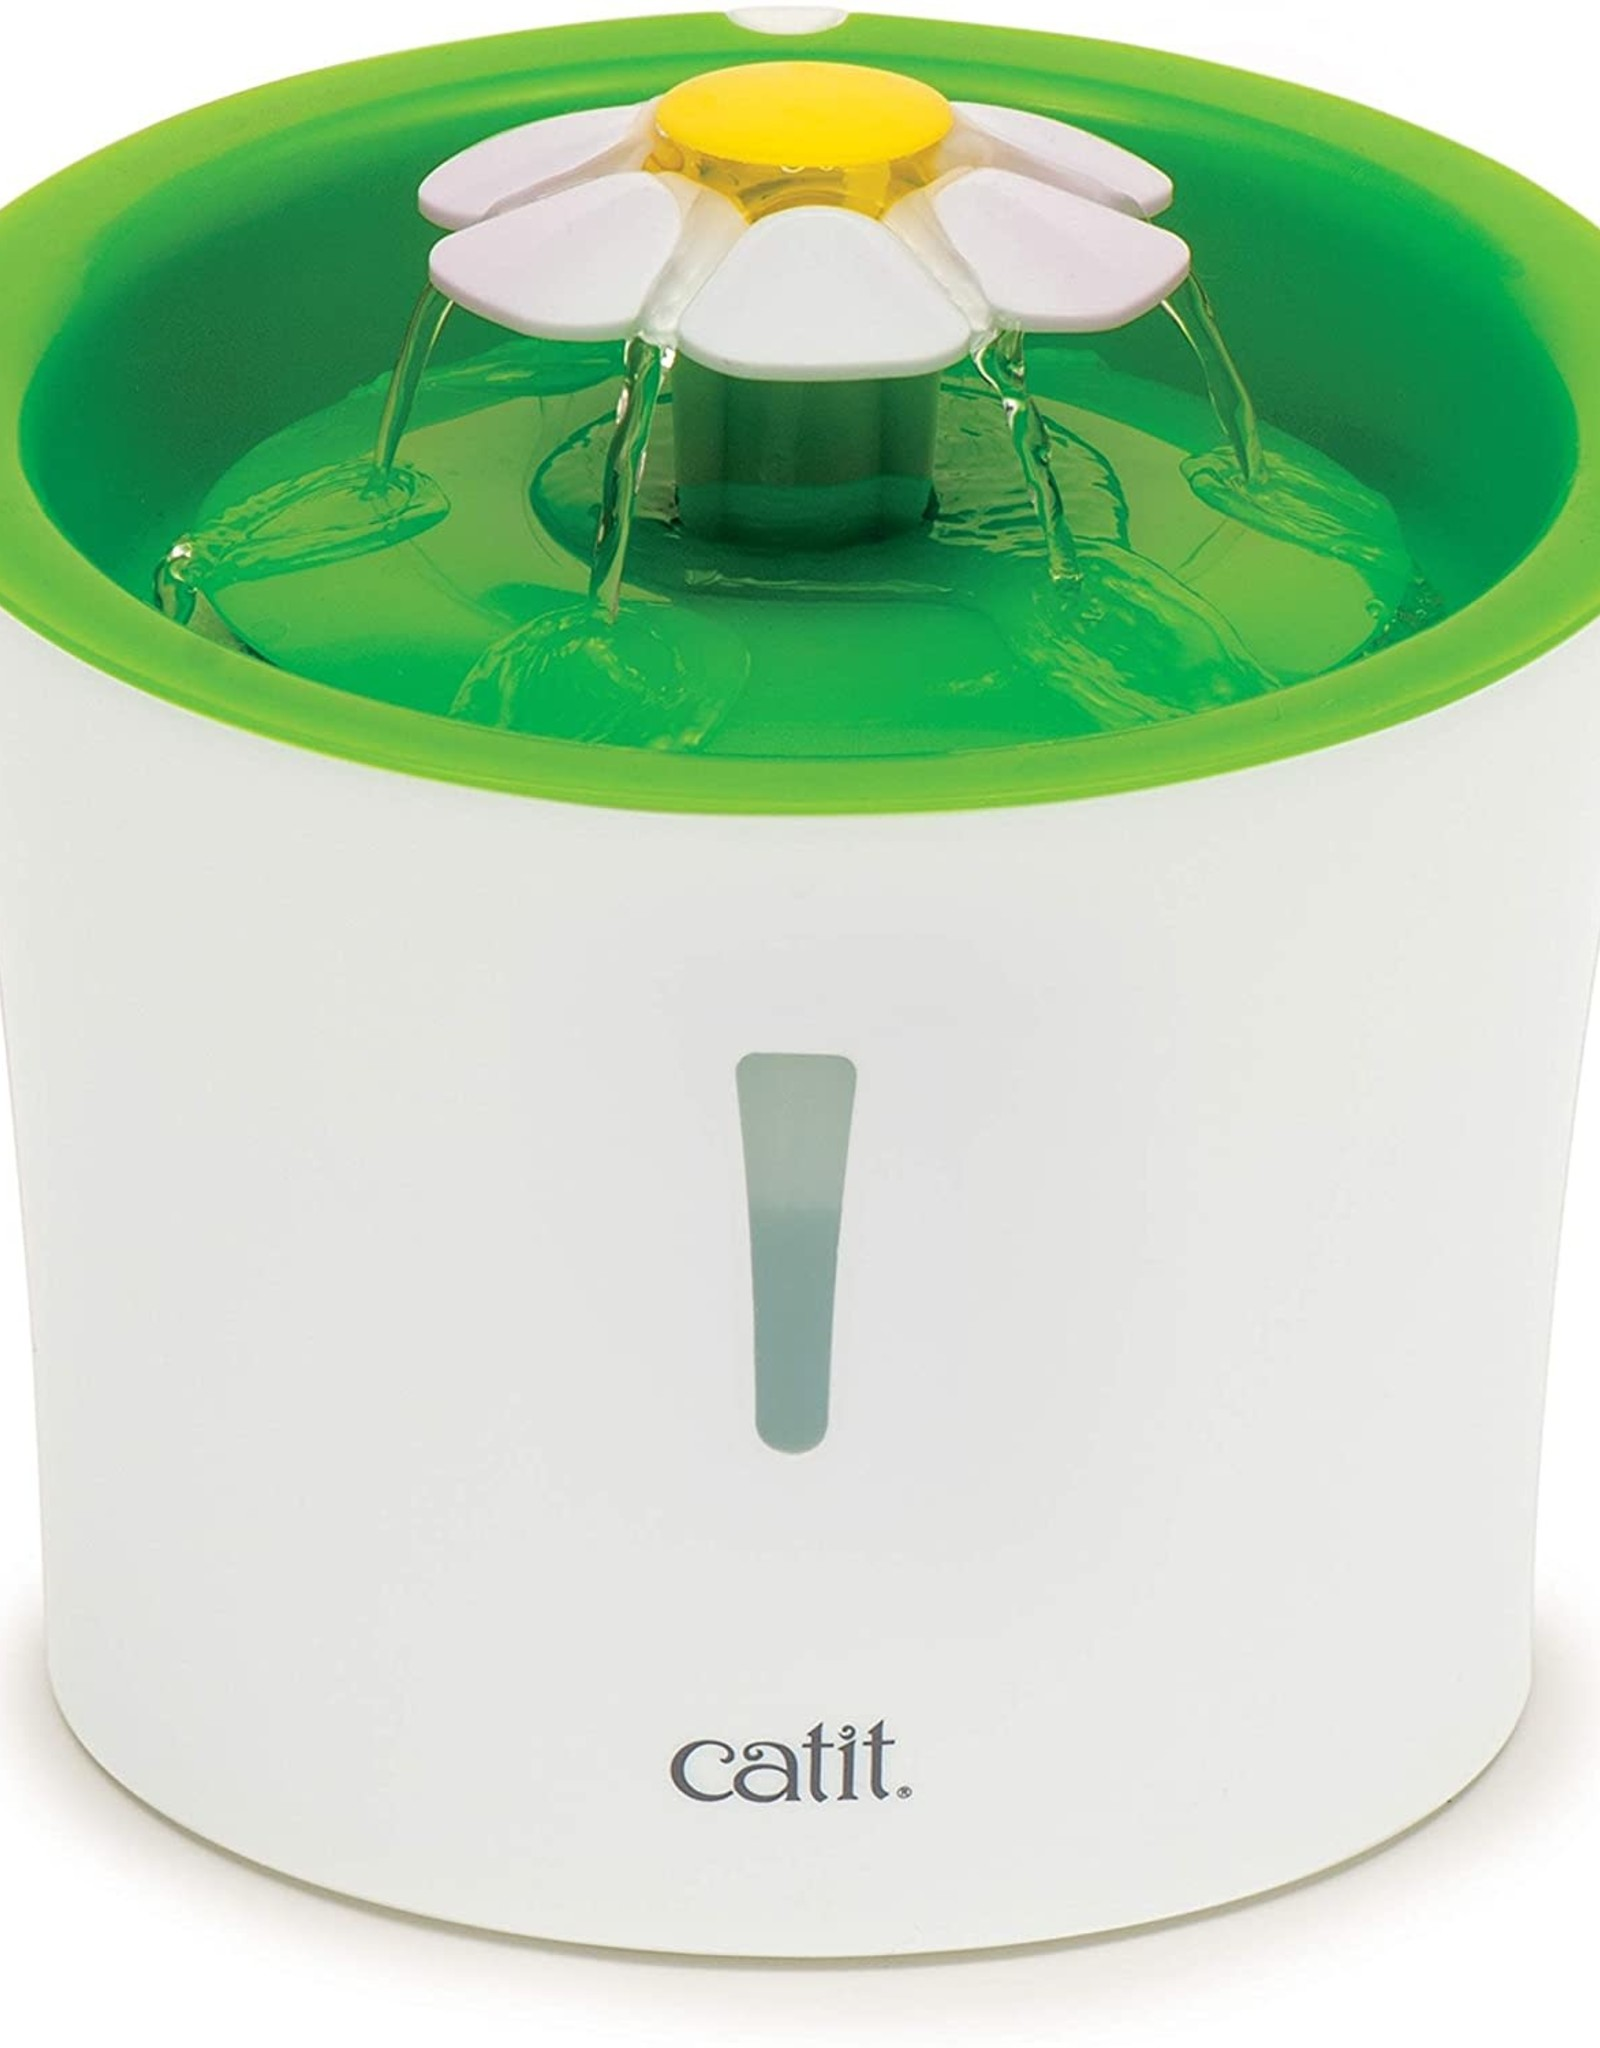 Catit Drinking Flower Fountain 3L